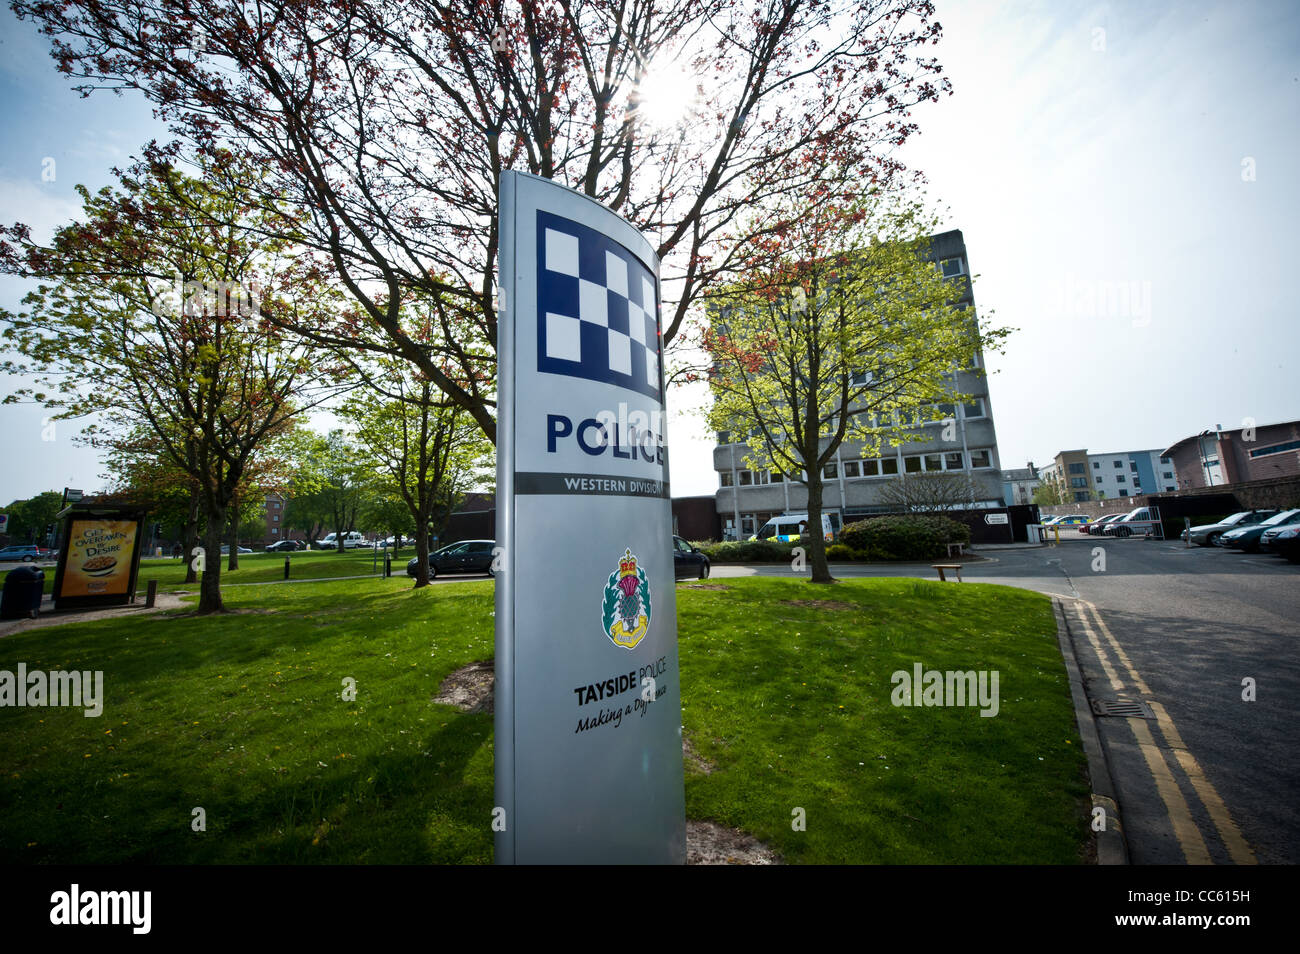 Perth Police Station, Scotland, Tayside. Barrack Street in Perth. - Stock Image